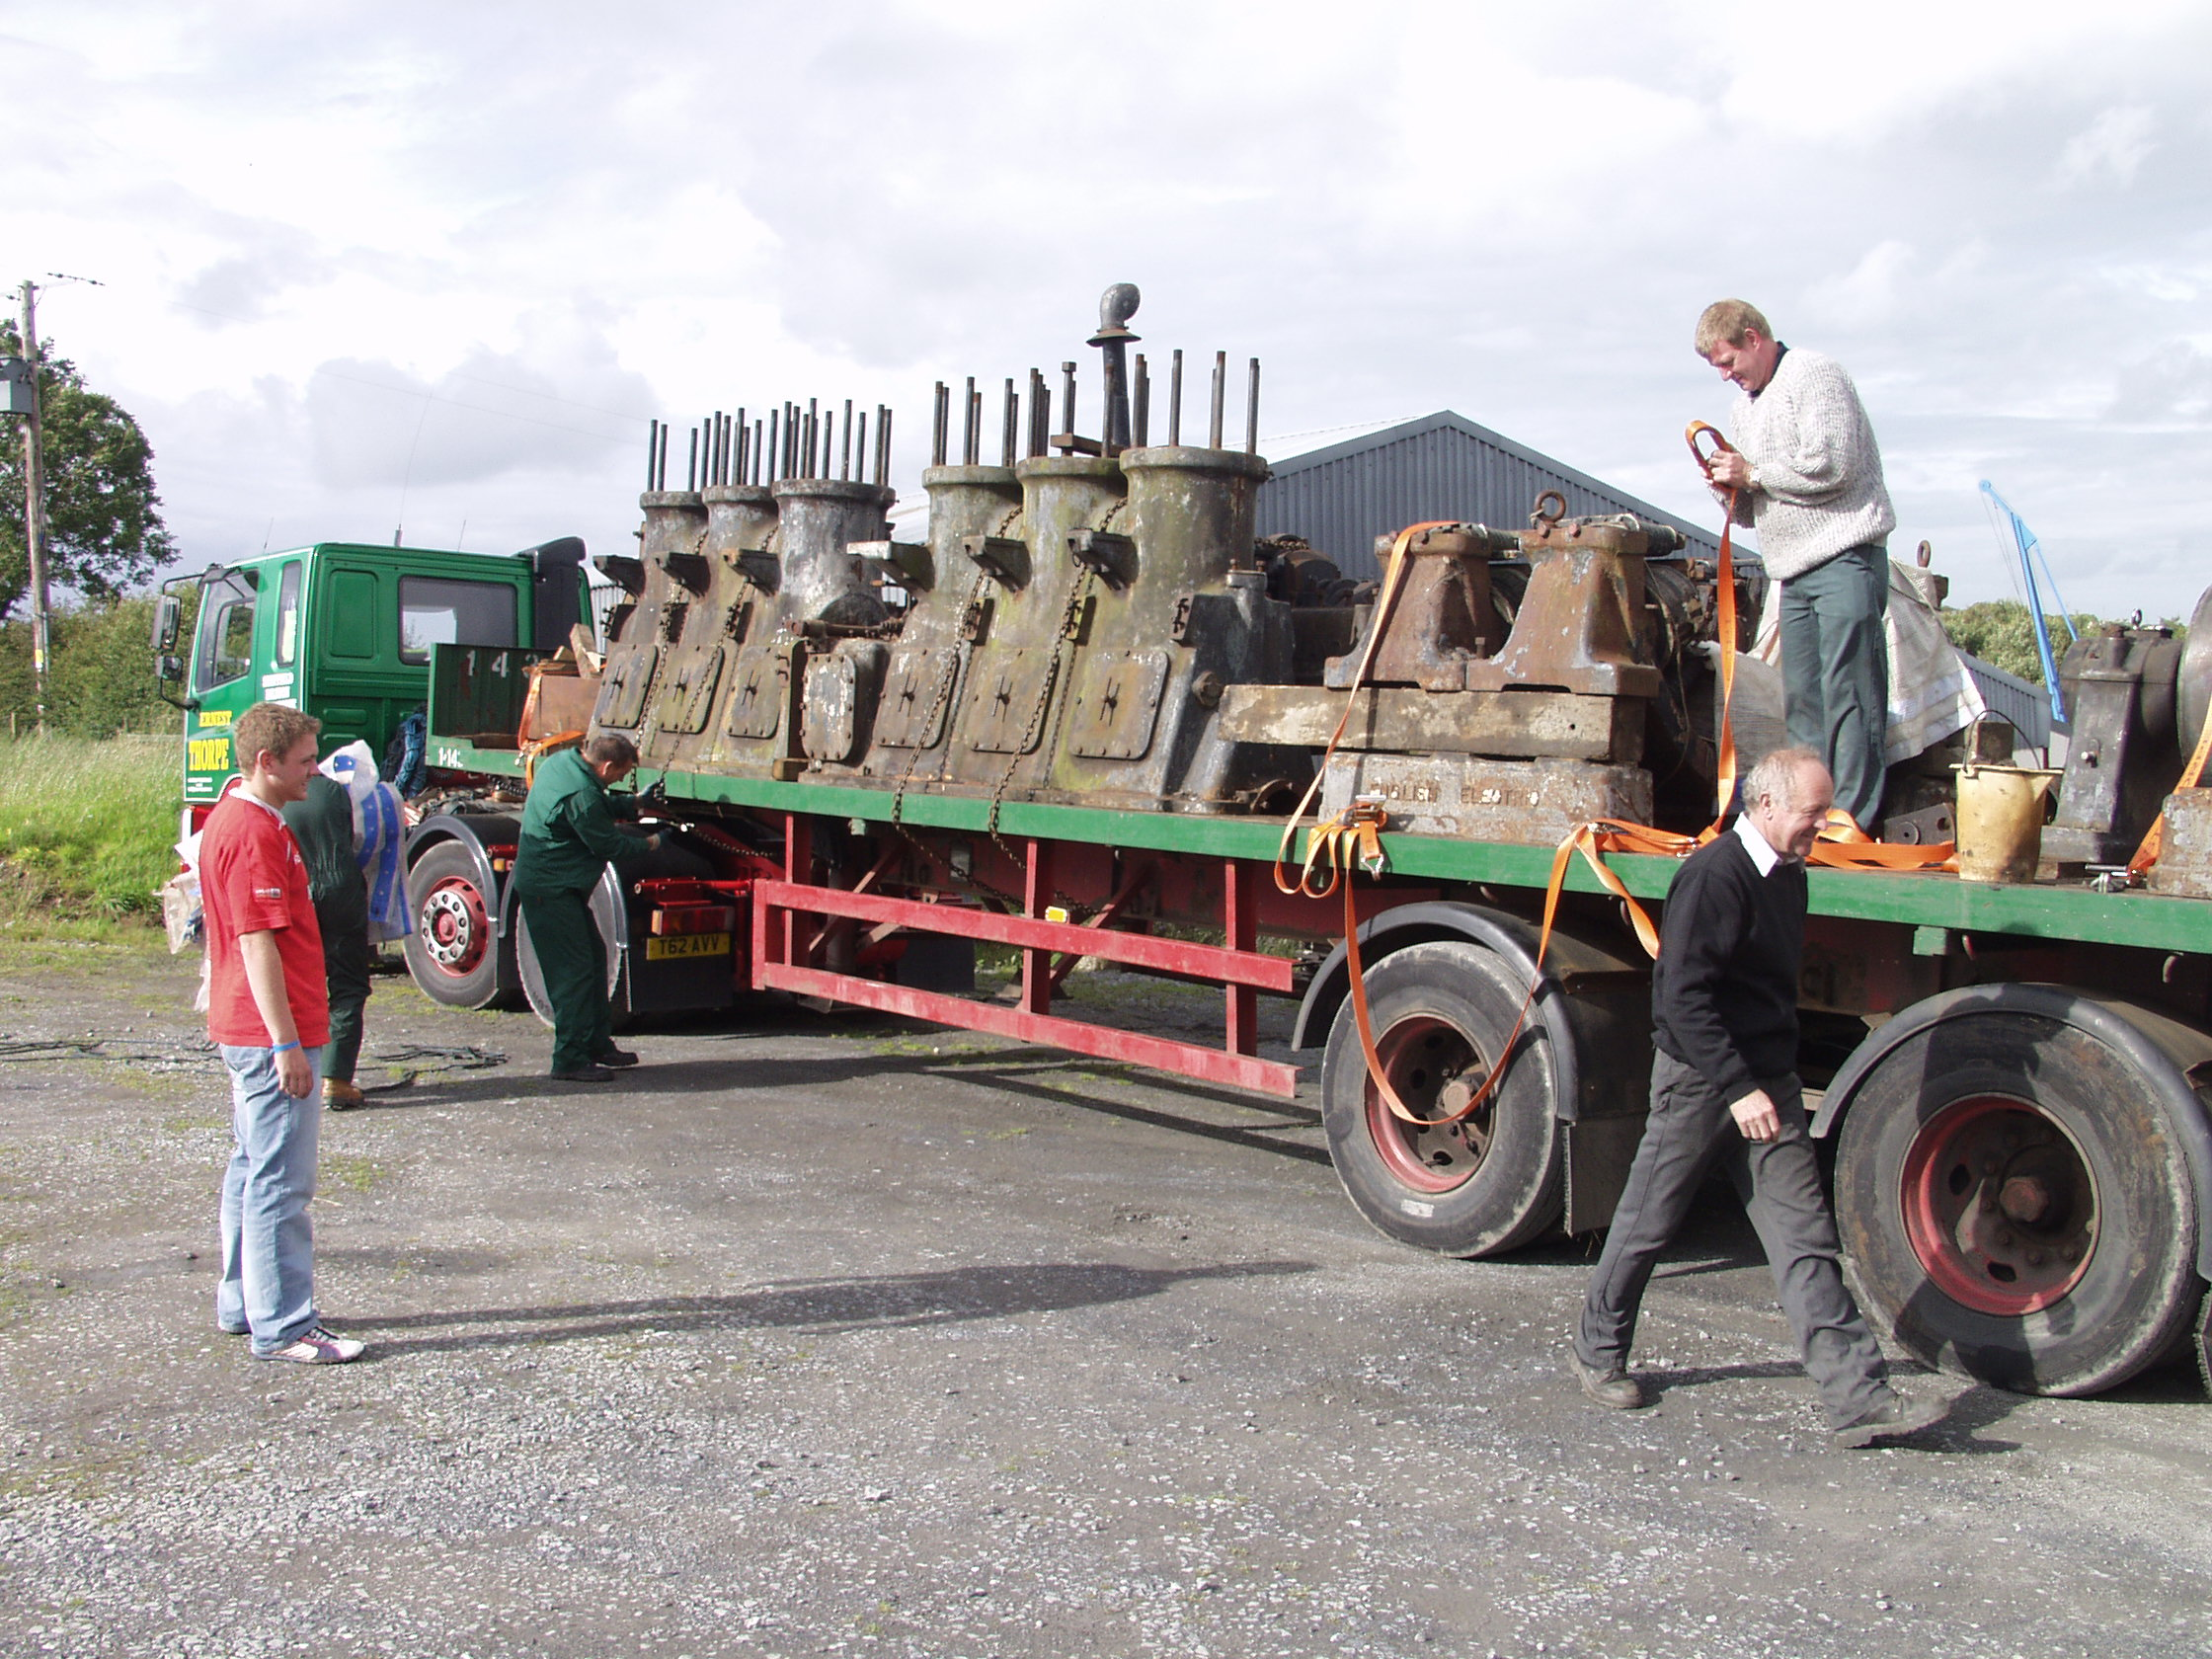 First load arriving at the museum